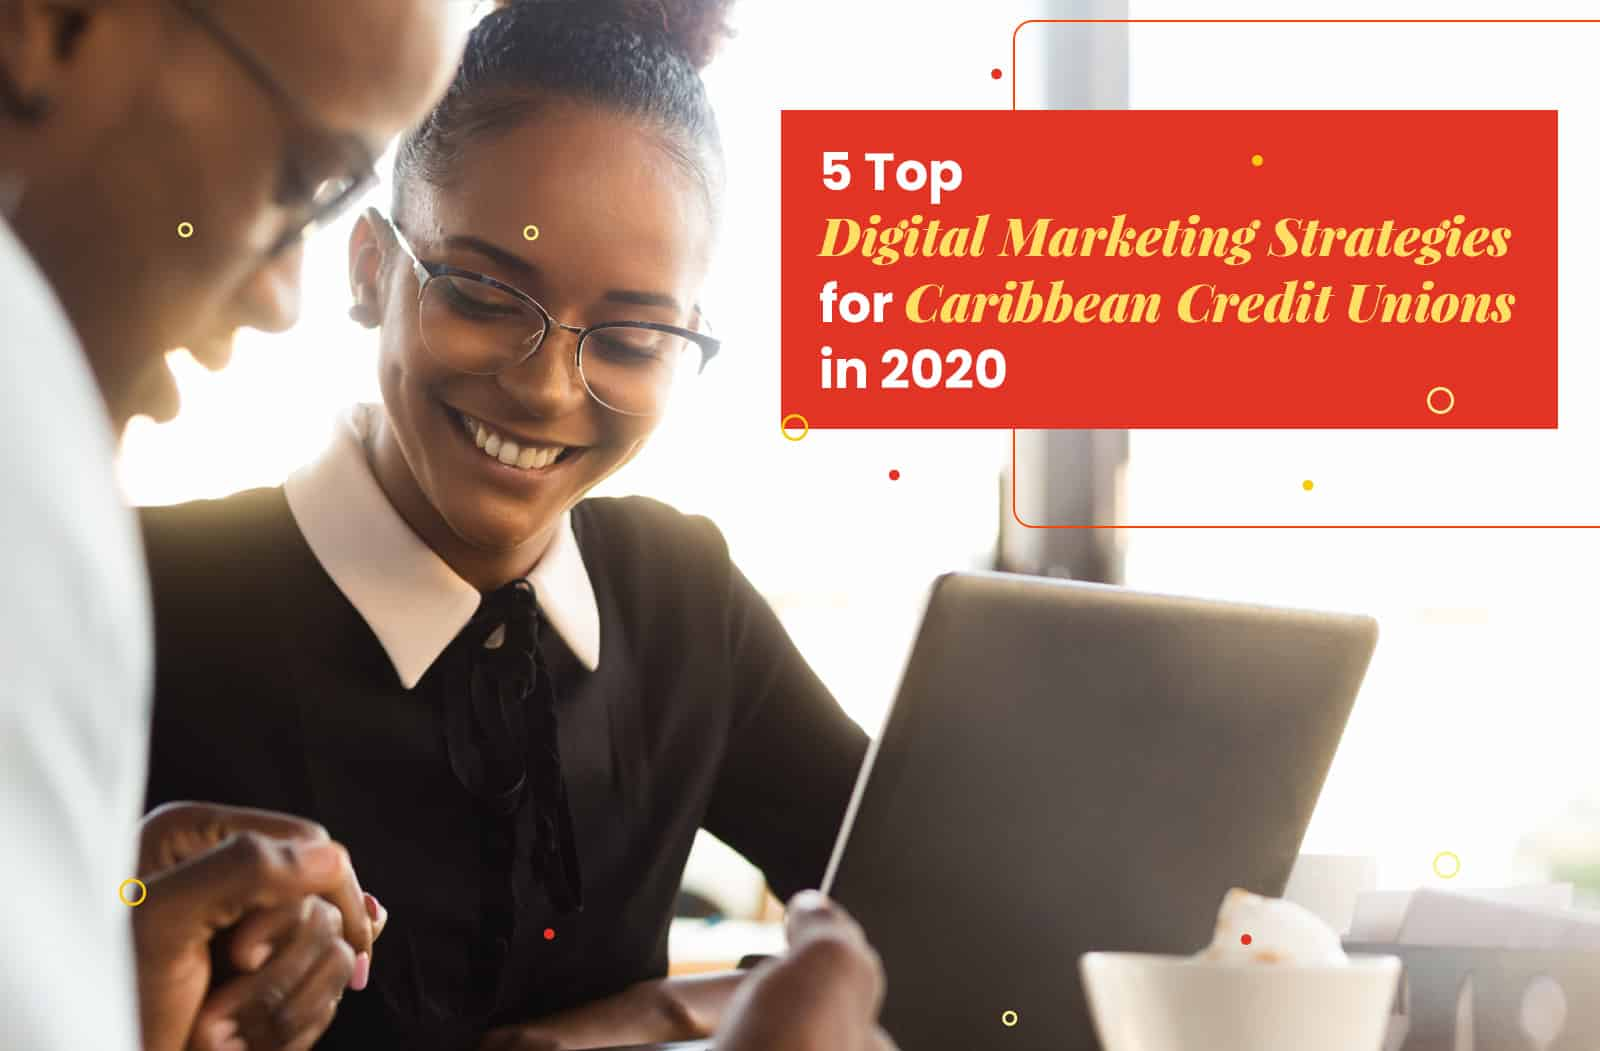 Digital Marketing for Credit Unions in the Caribbean